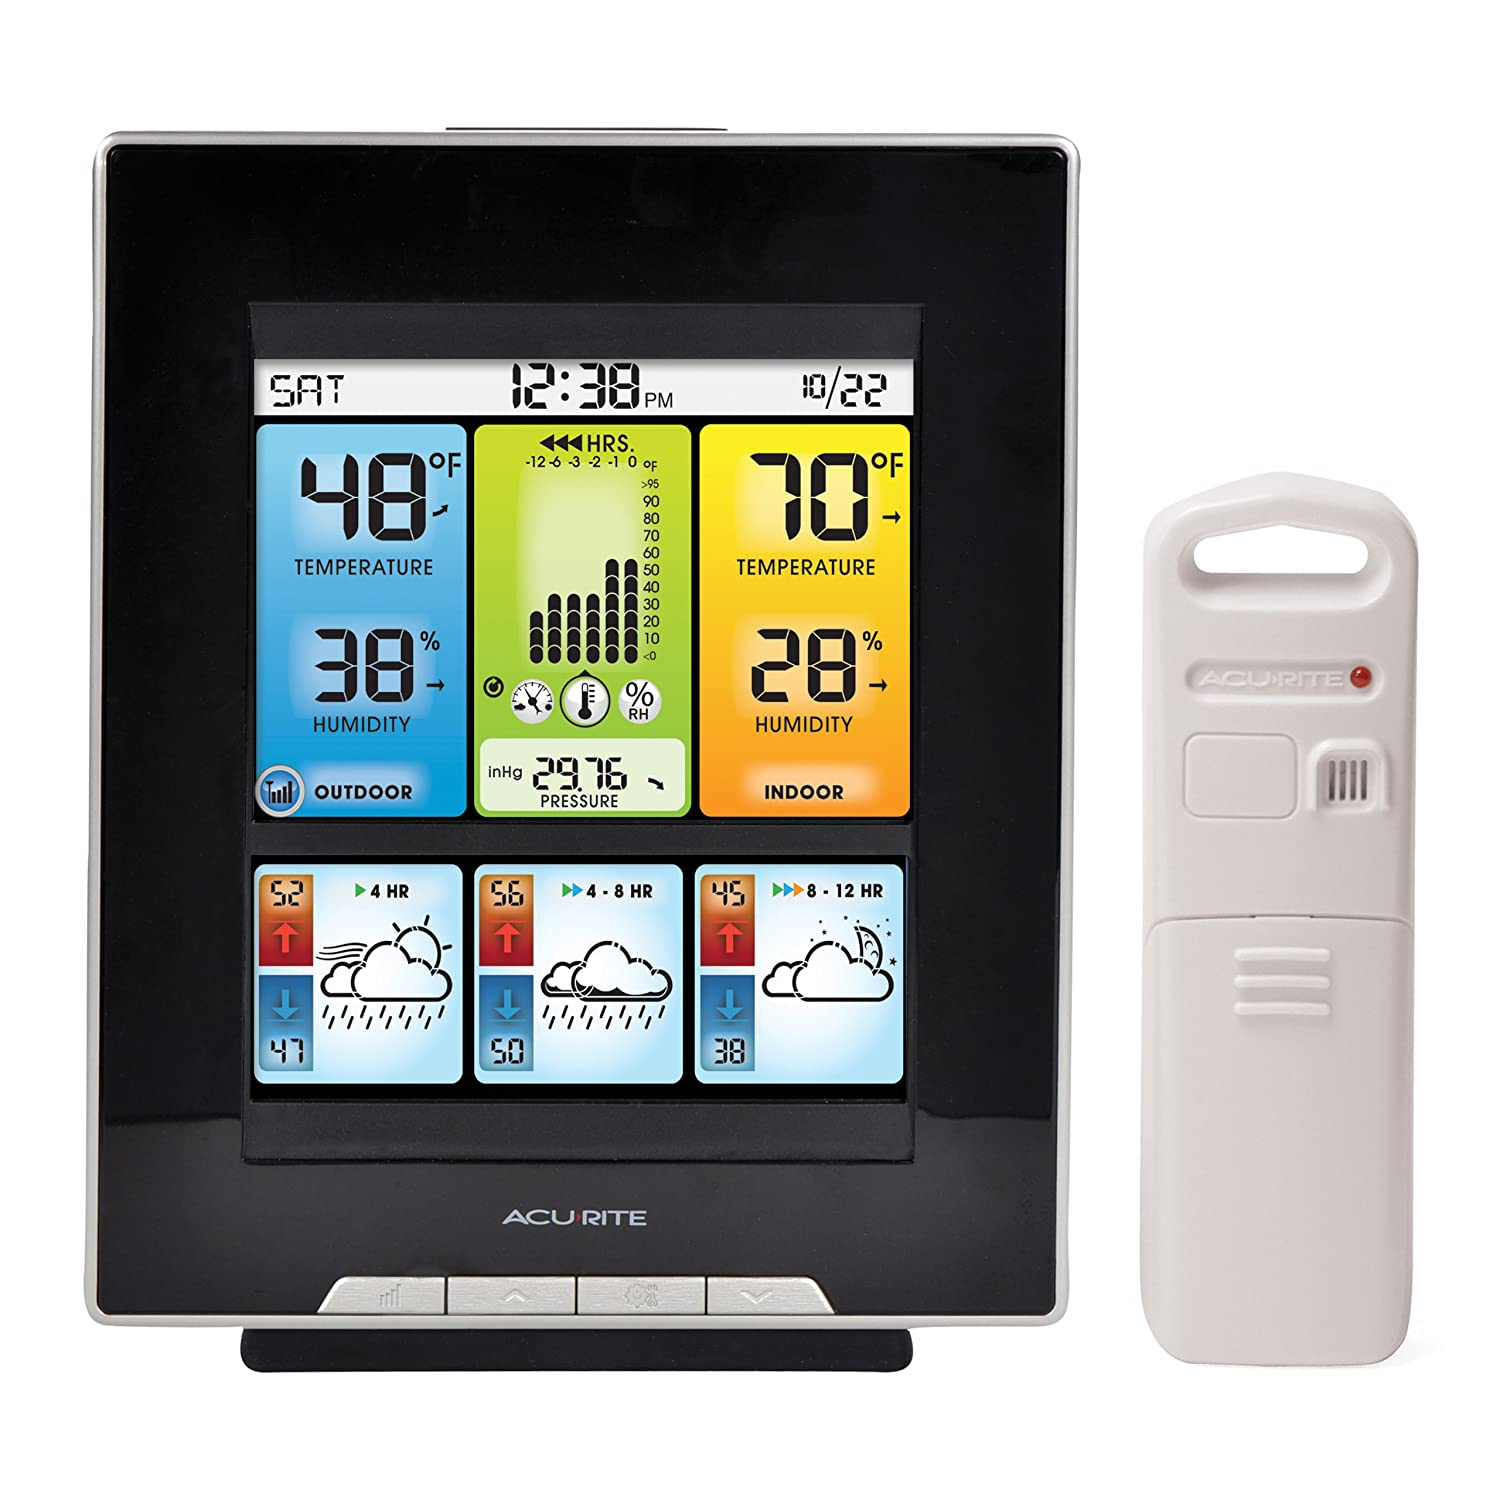 Amazon.com: AcuRite 02007 Digital Home Weather Station With Morning Noon  And Night Precision Forecast, Temperature And Humidity Gauge: Home U0026 Kitchen